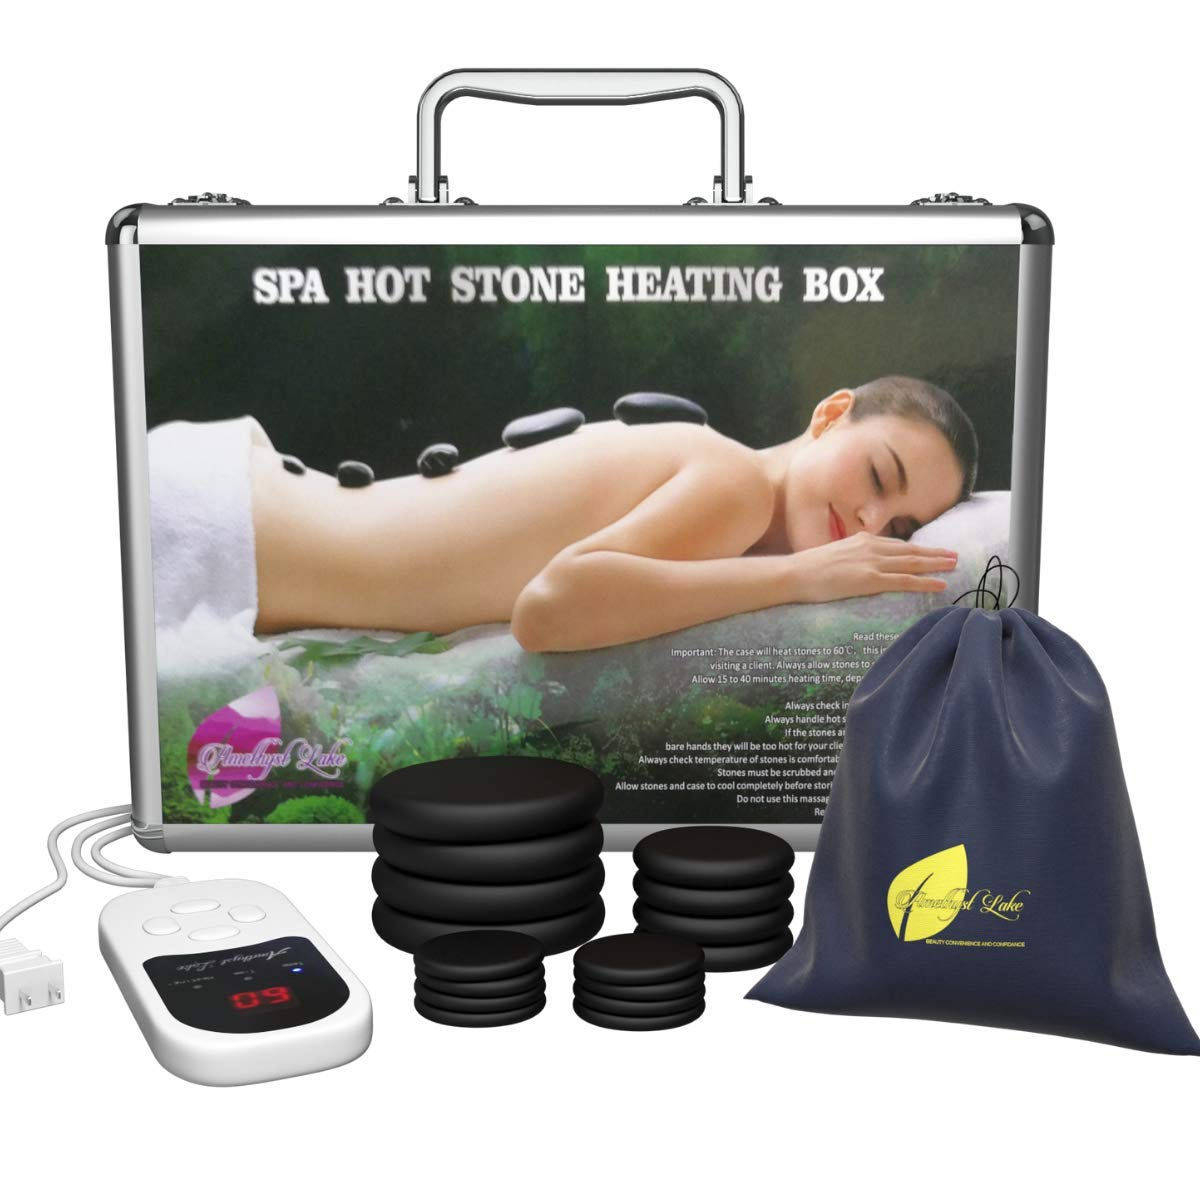 Professional Portable Massage Stone Heater Kit with 16 Therapy Hot Rocks Massage Stones Bonus Guide E-Book Included by Amethyst Lake